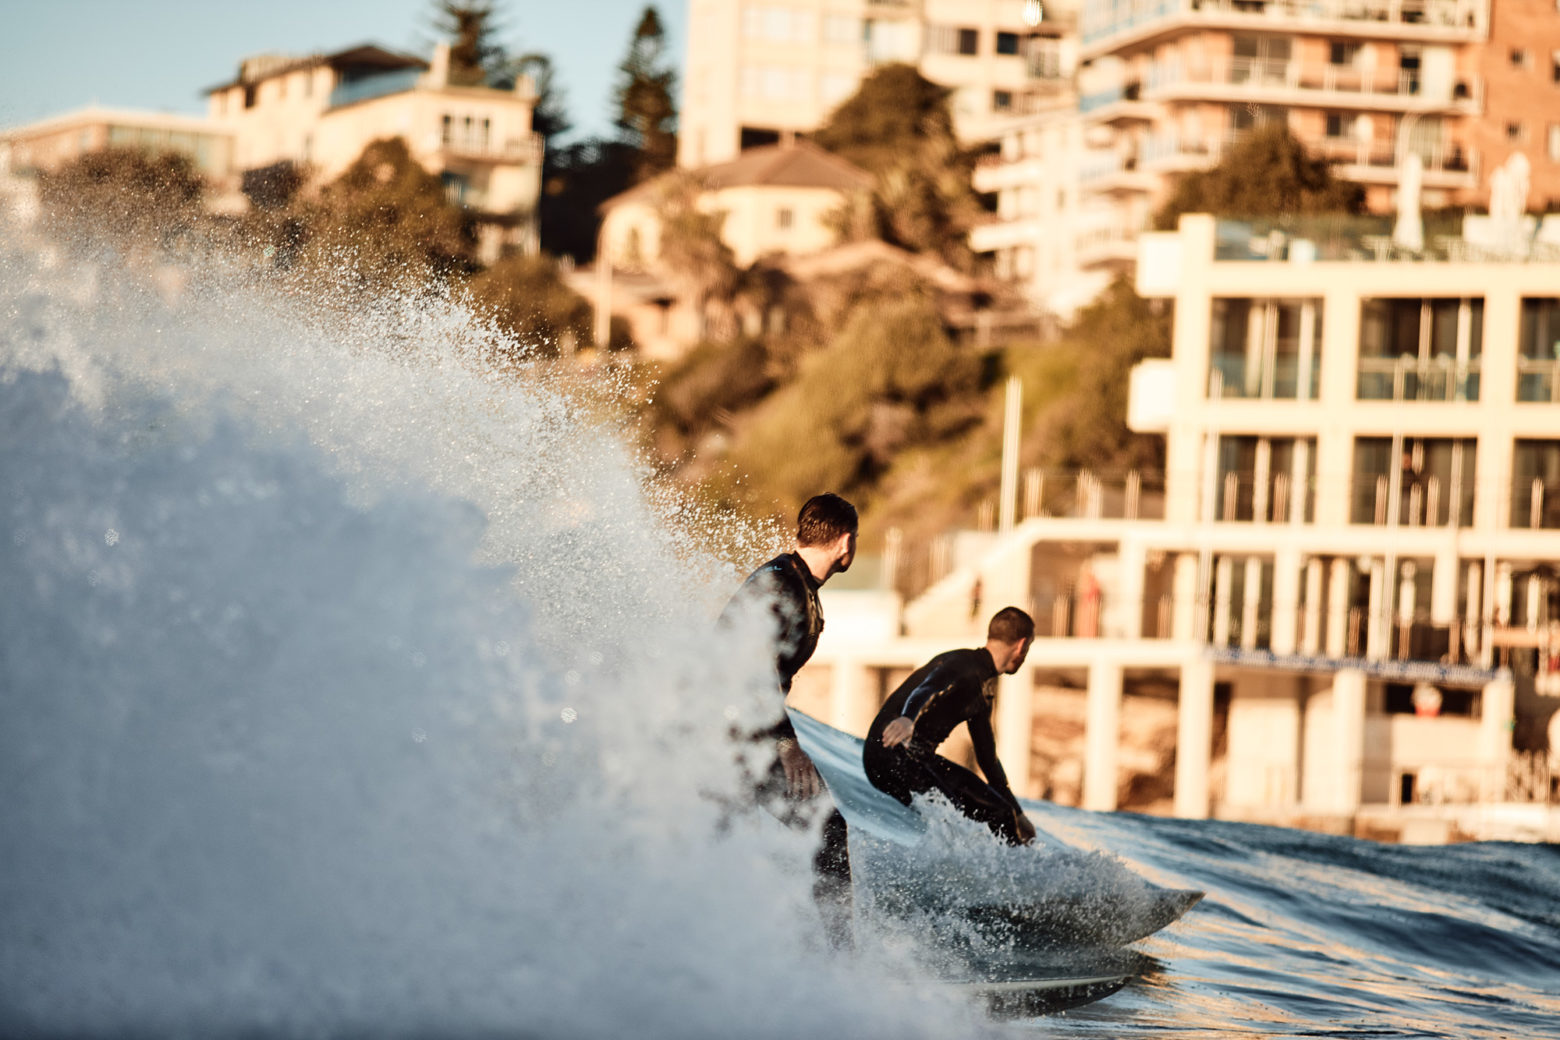 Getting a wave to yourself at Bondi isn't easy these days